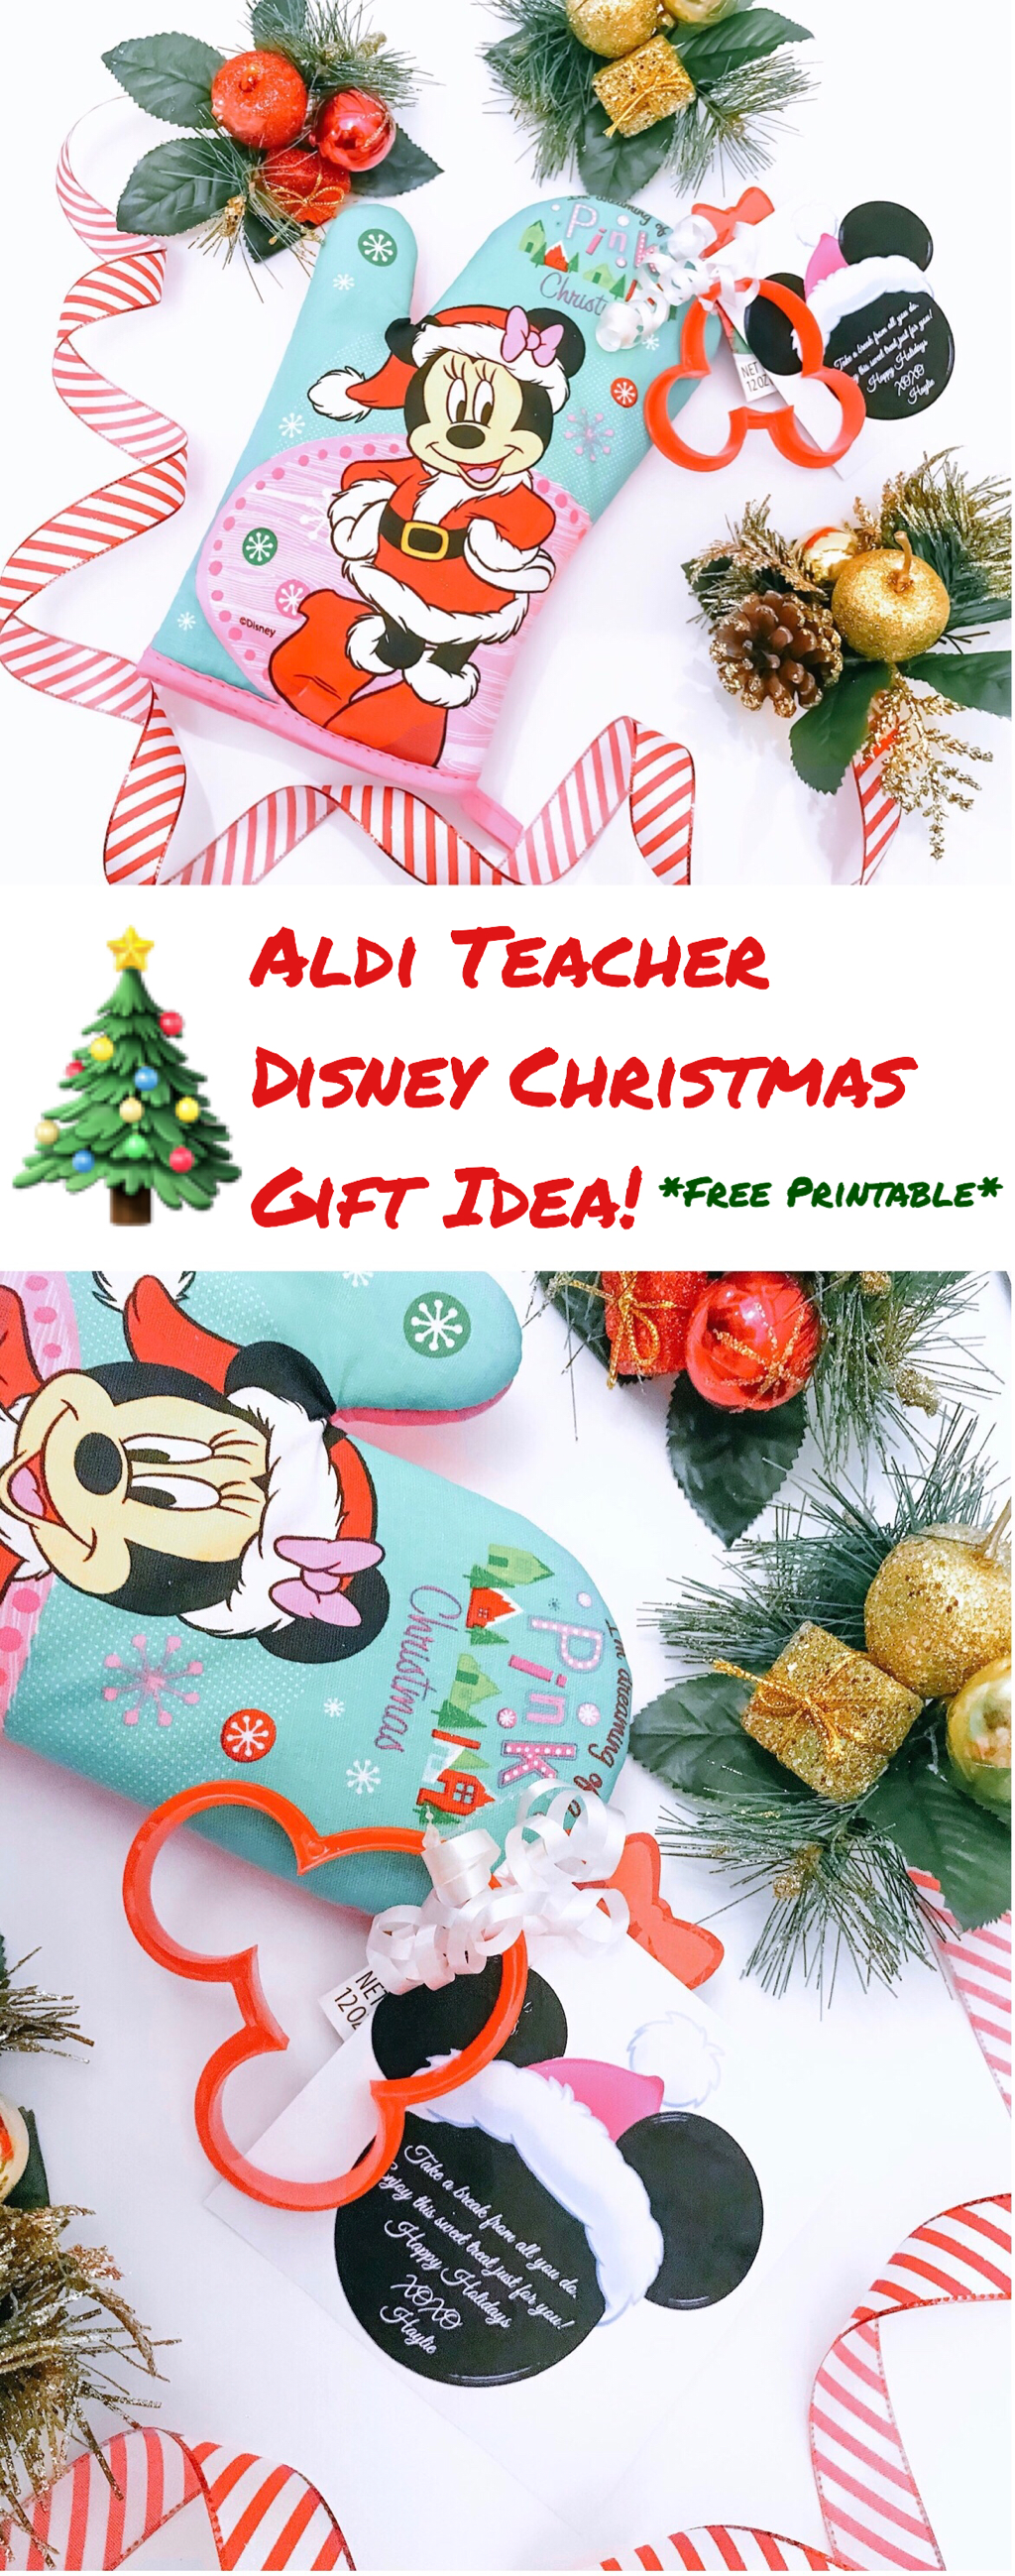 Aldi Teacher Disney Christmas Gift Idea | The Trophy WifeStyle ...